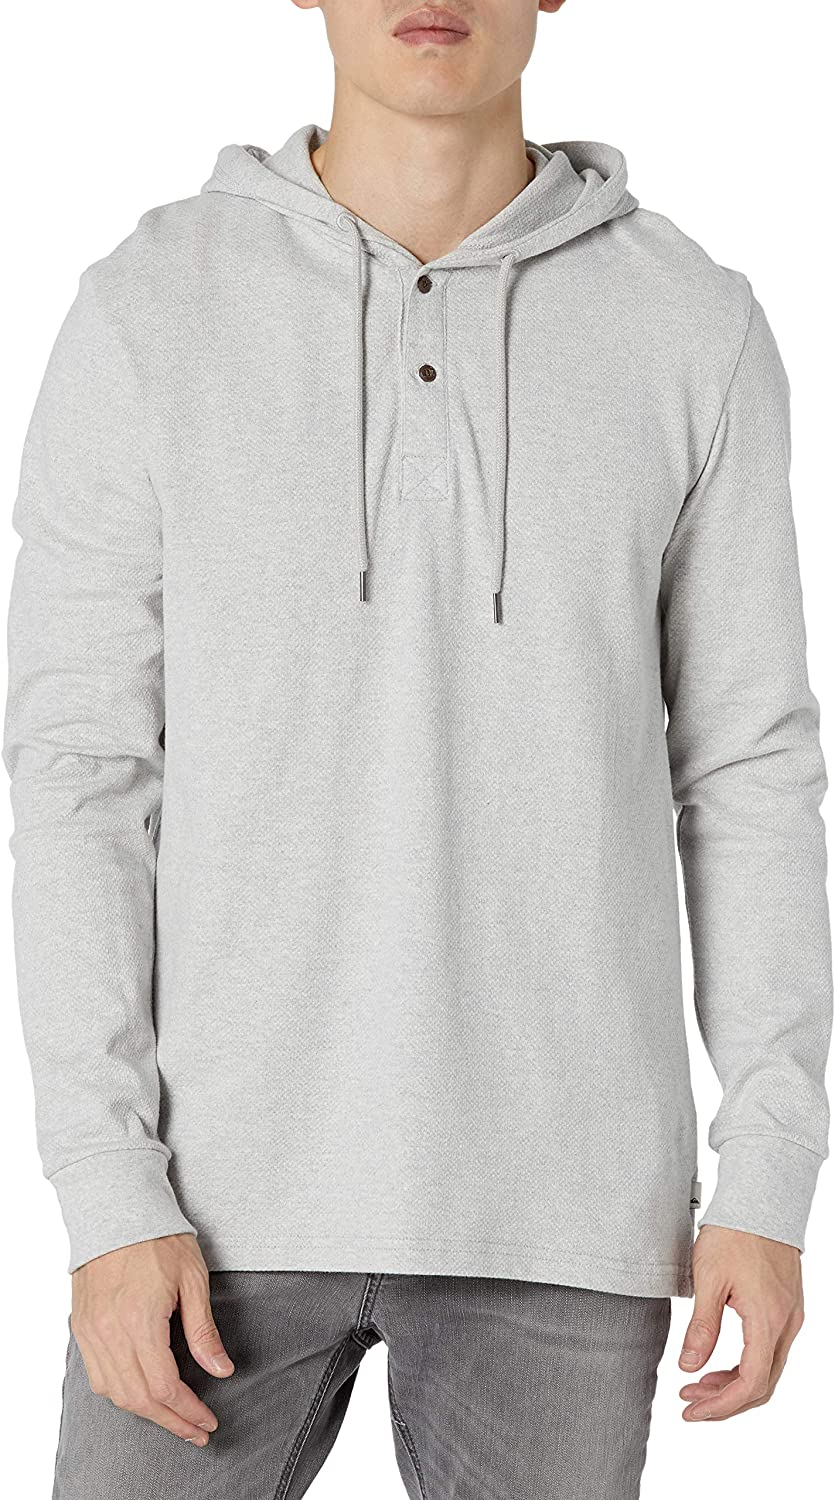 Quiksilver Baltimore Mall Men's Sanofry Knit Hood Max 89% OFF Top